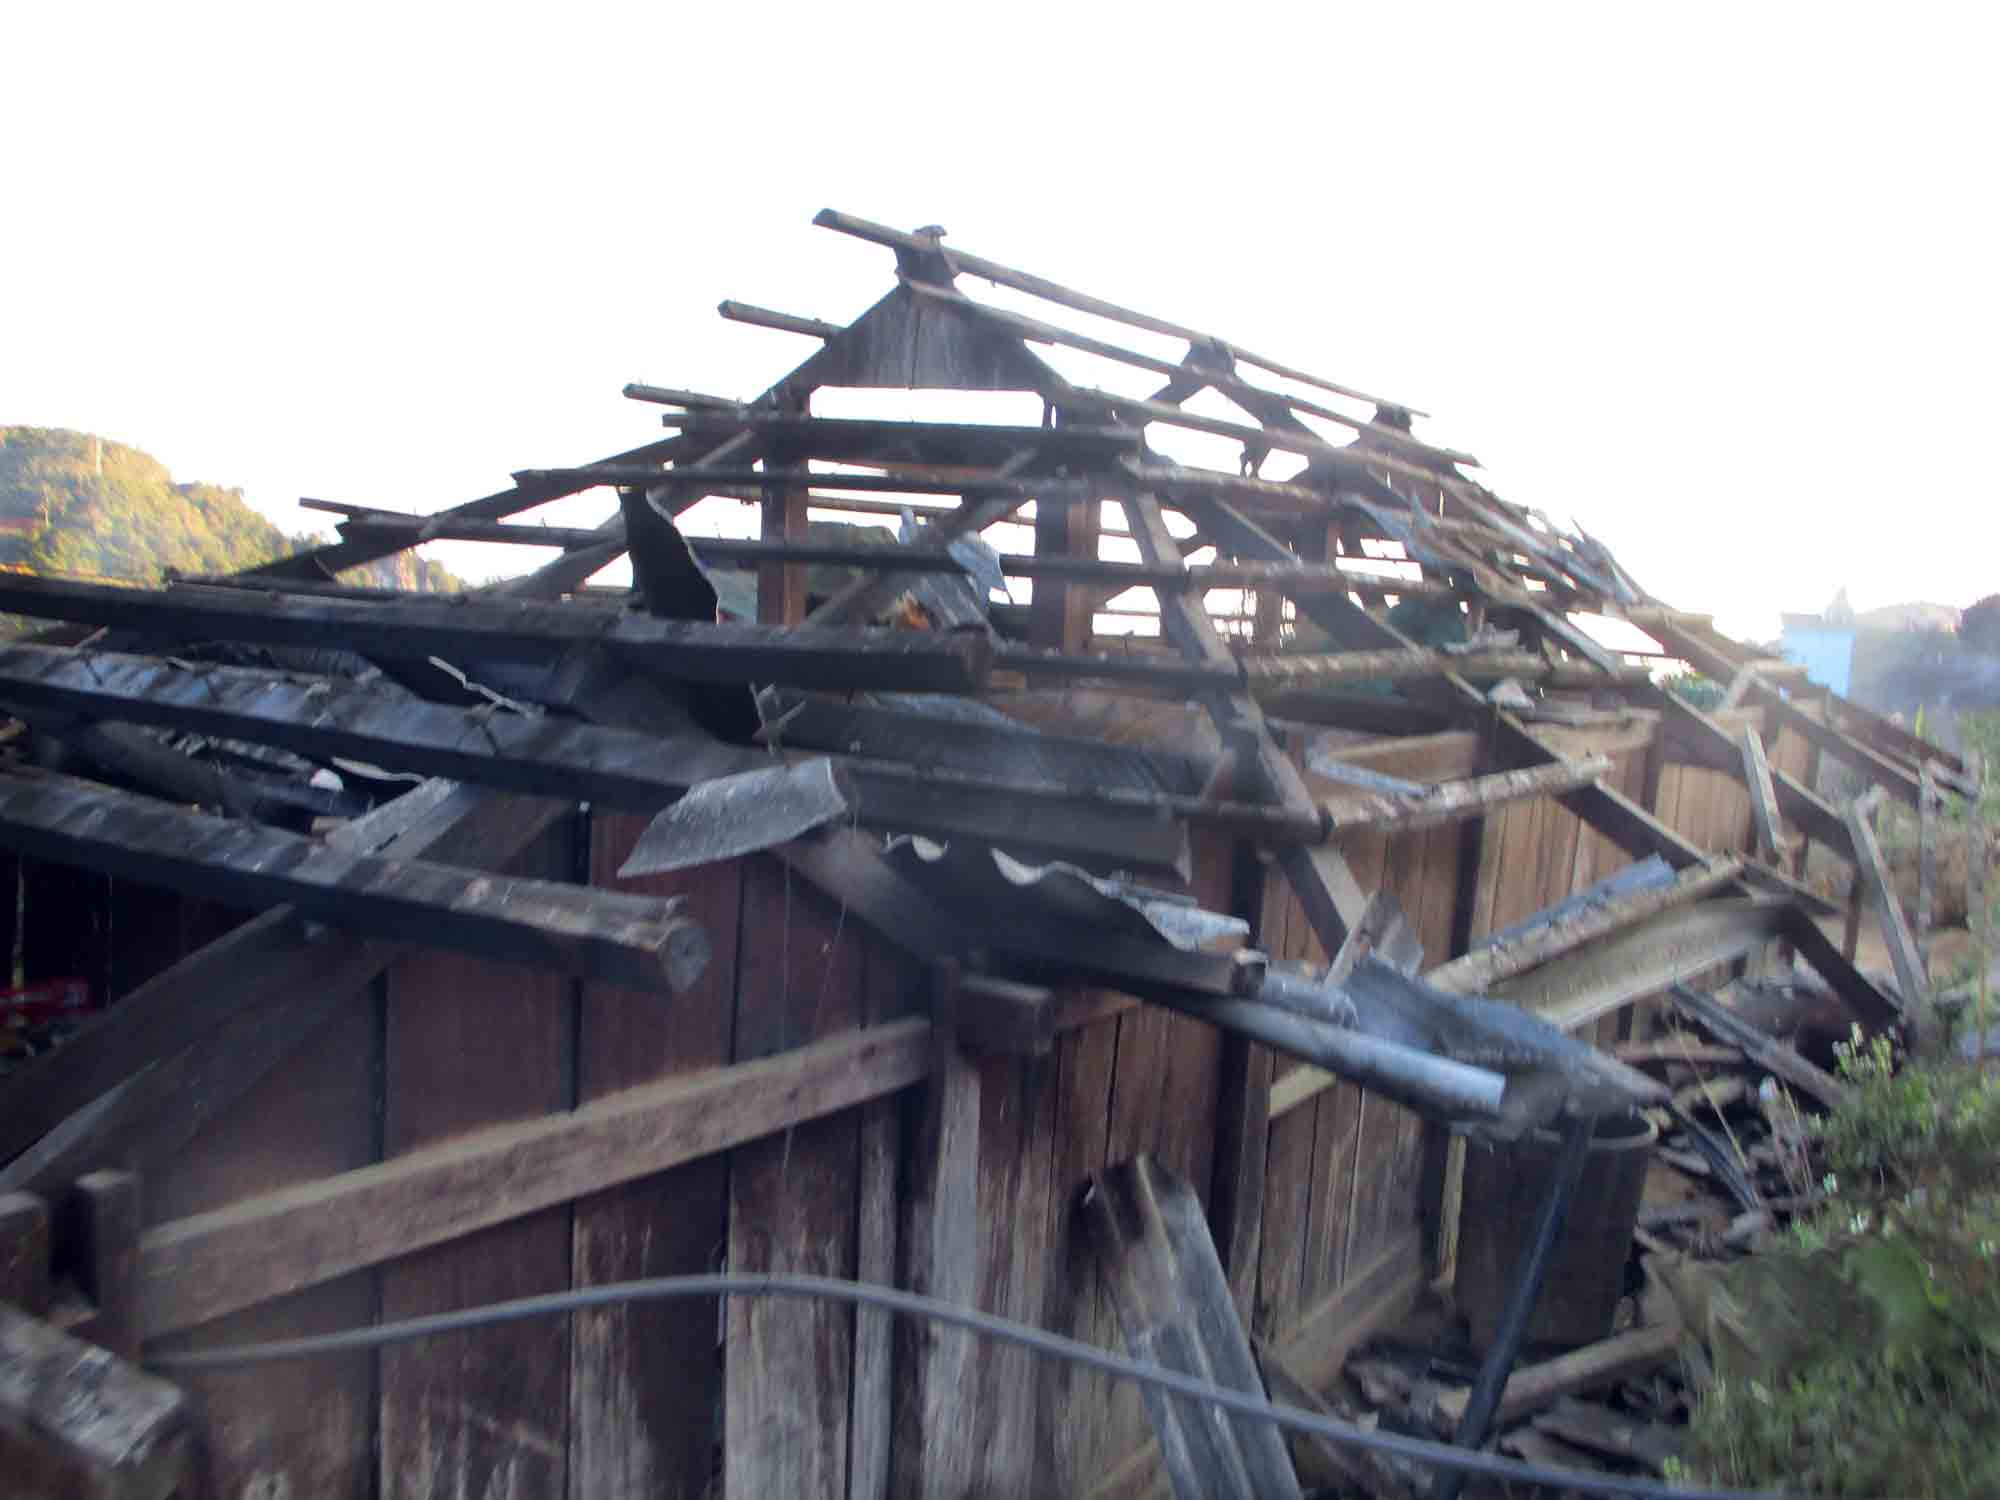 Angry relatives destroyed their house while the Christian family was gone.